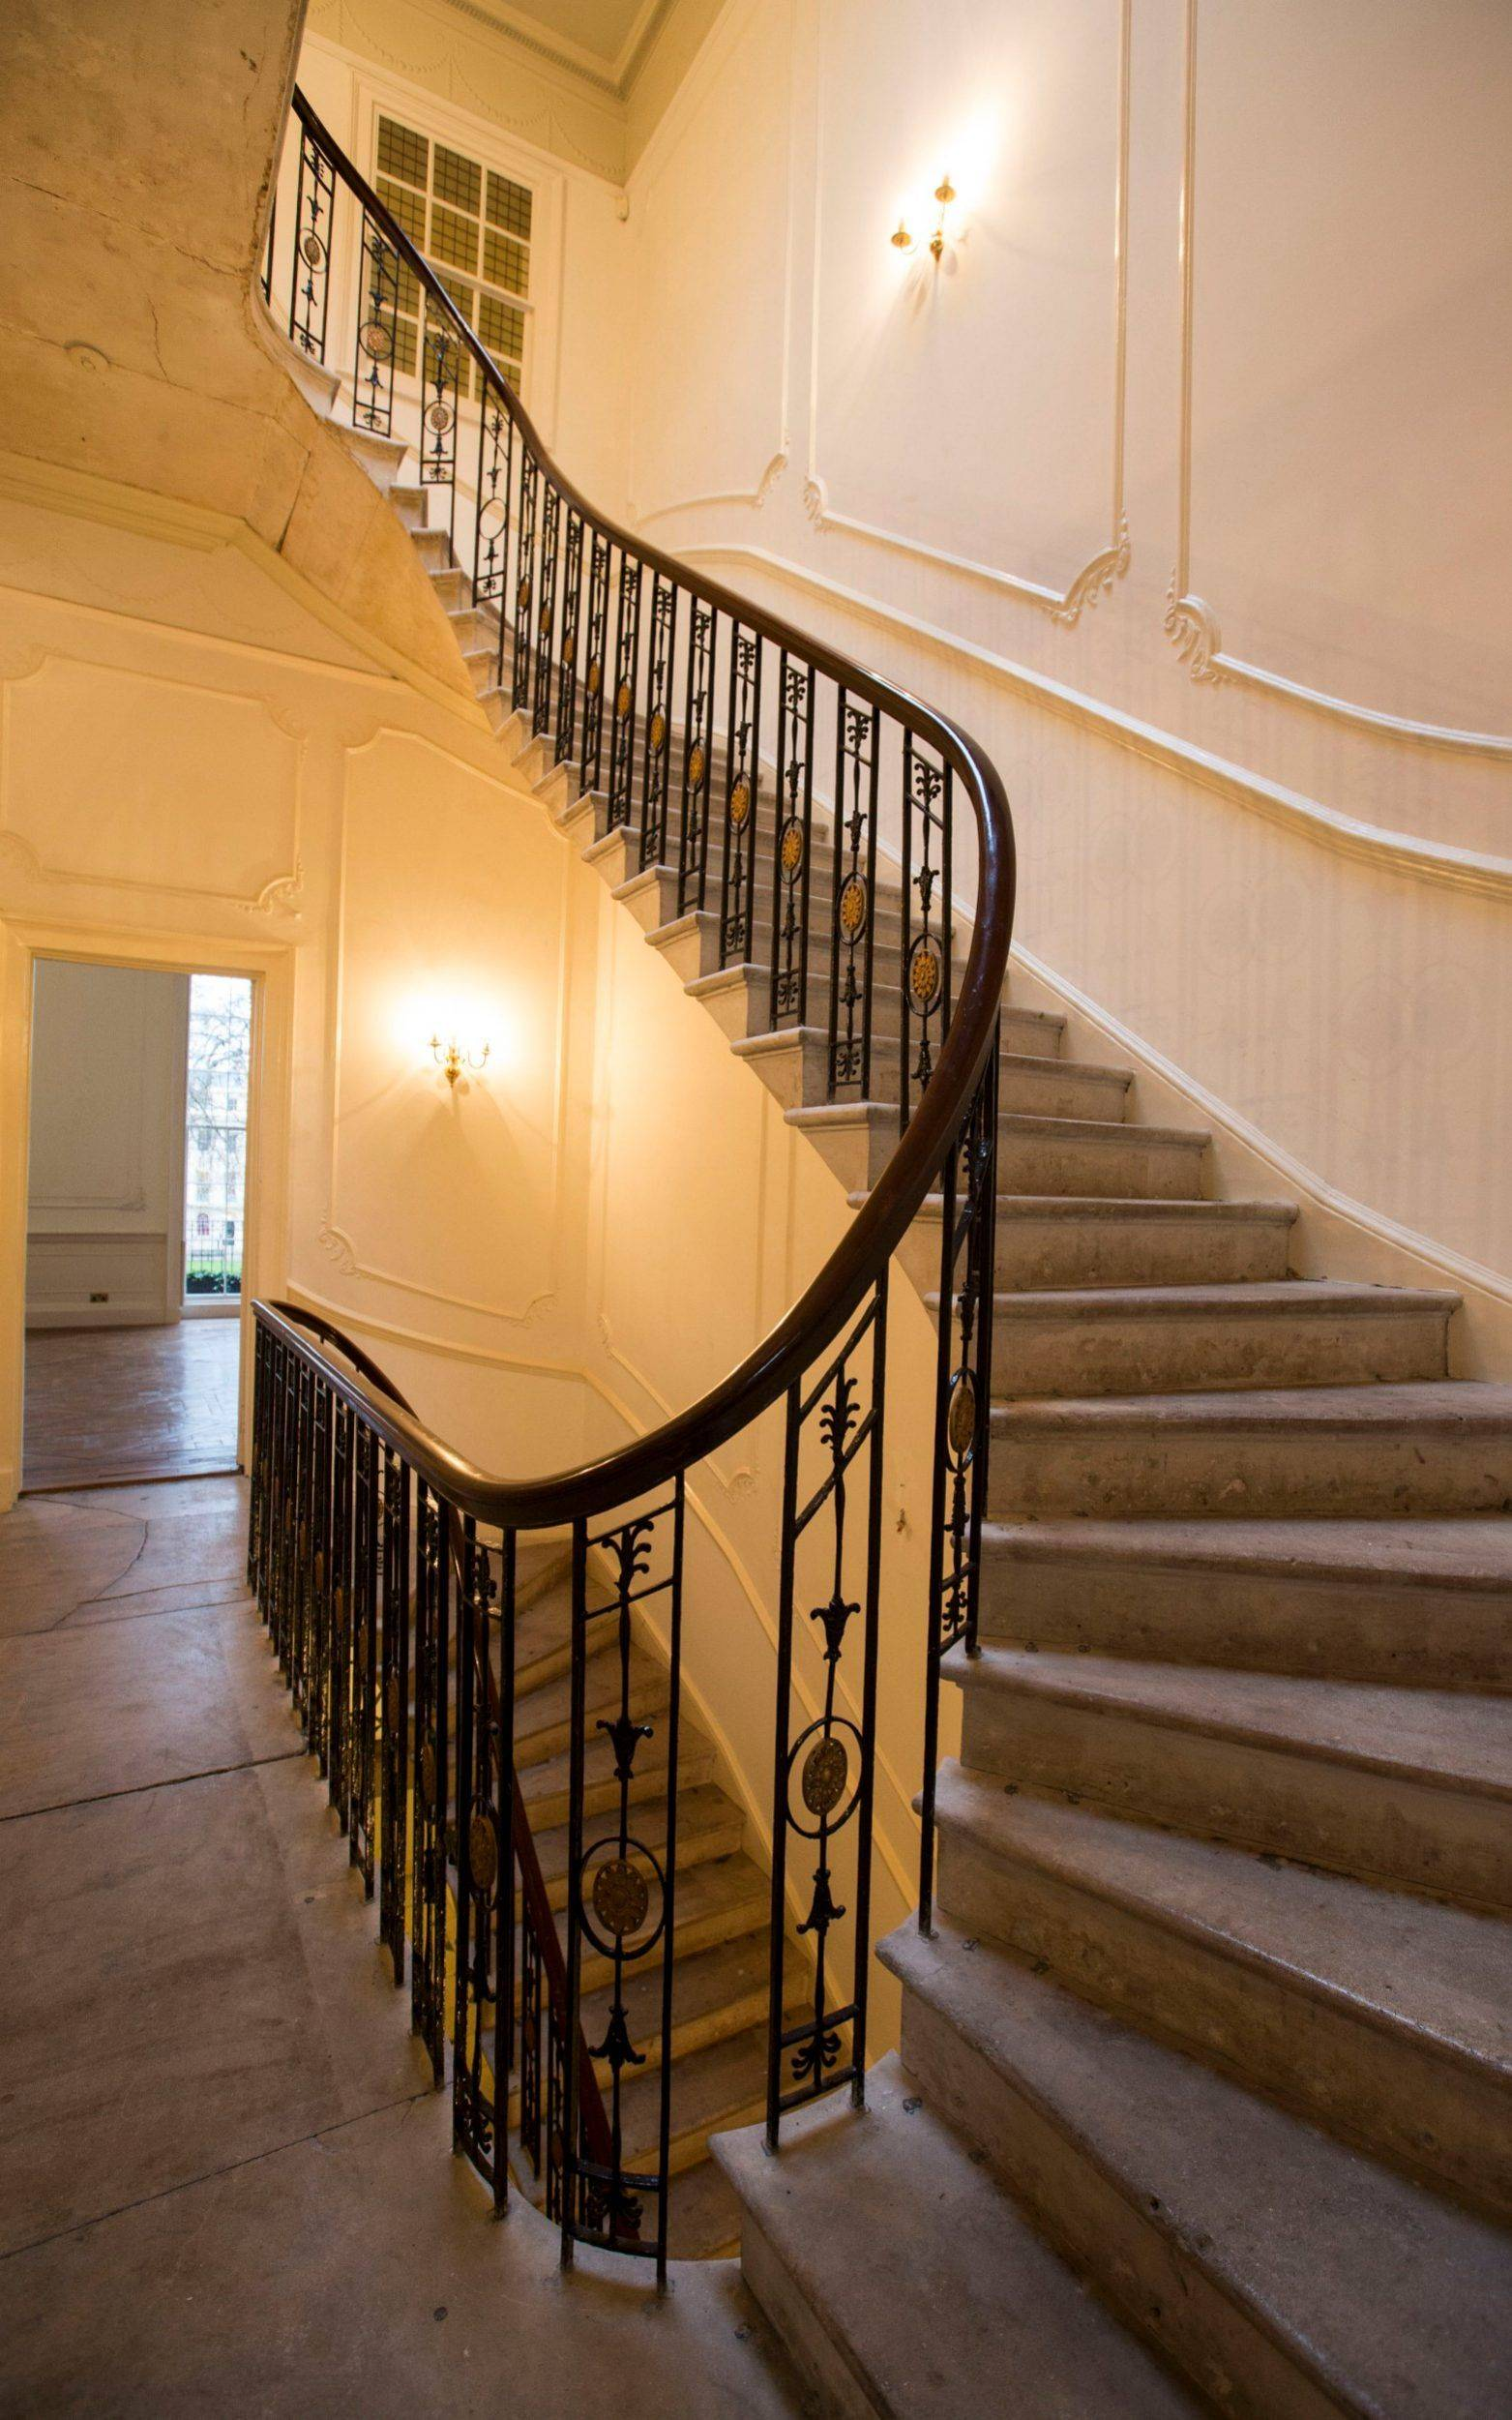 Threadhouse Curtains Awesome Six Fitzroy Square London Staircase Phantom Thread House